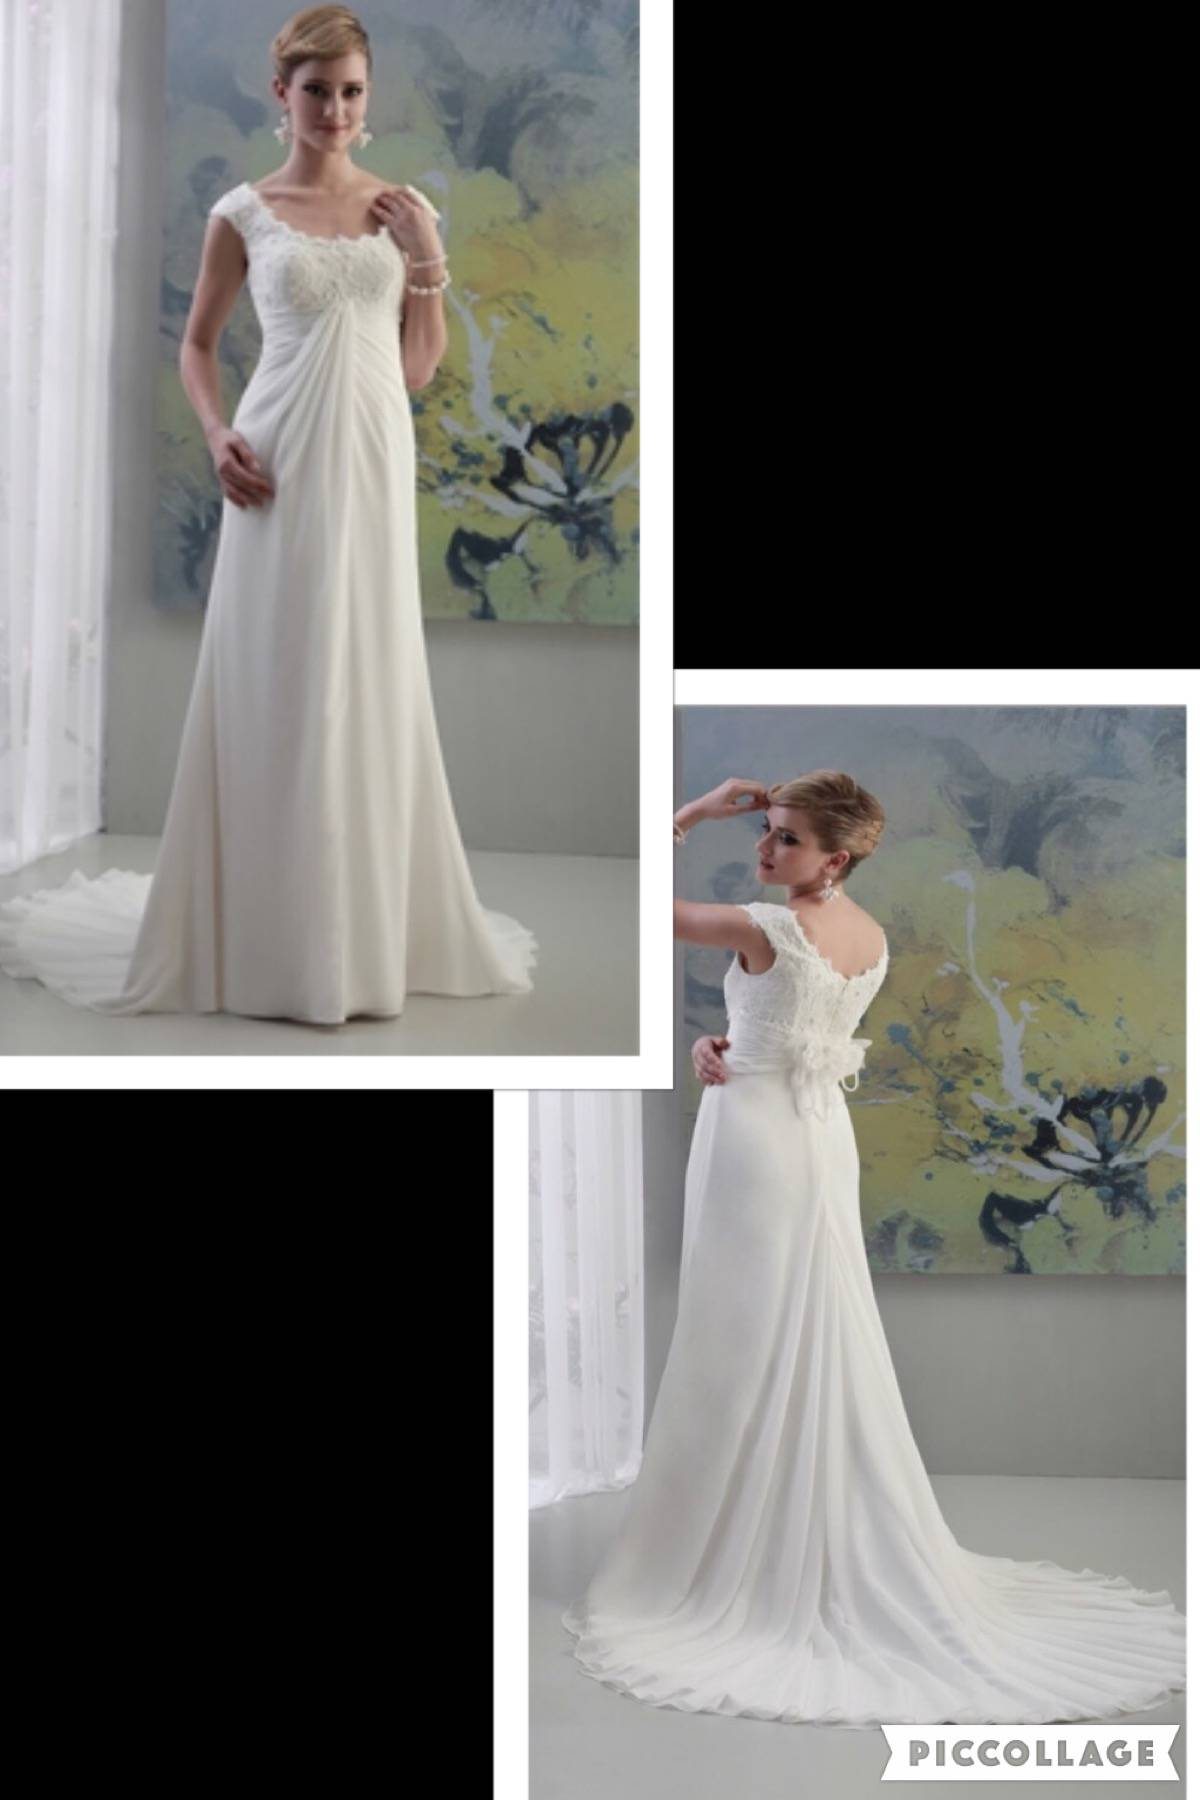 NWT PALLAS ATHENA BY VENUS LACE & CHIFFON WEDDING GOWN SIZE 10 $199.00